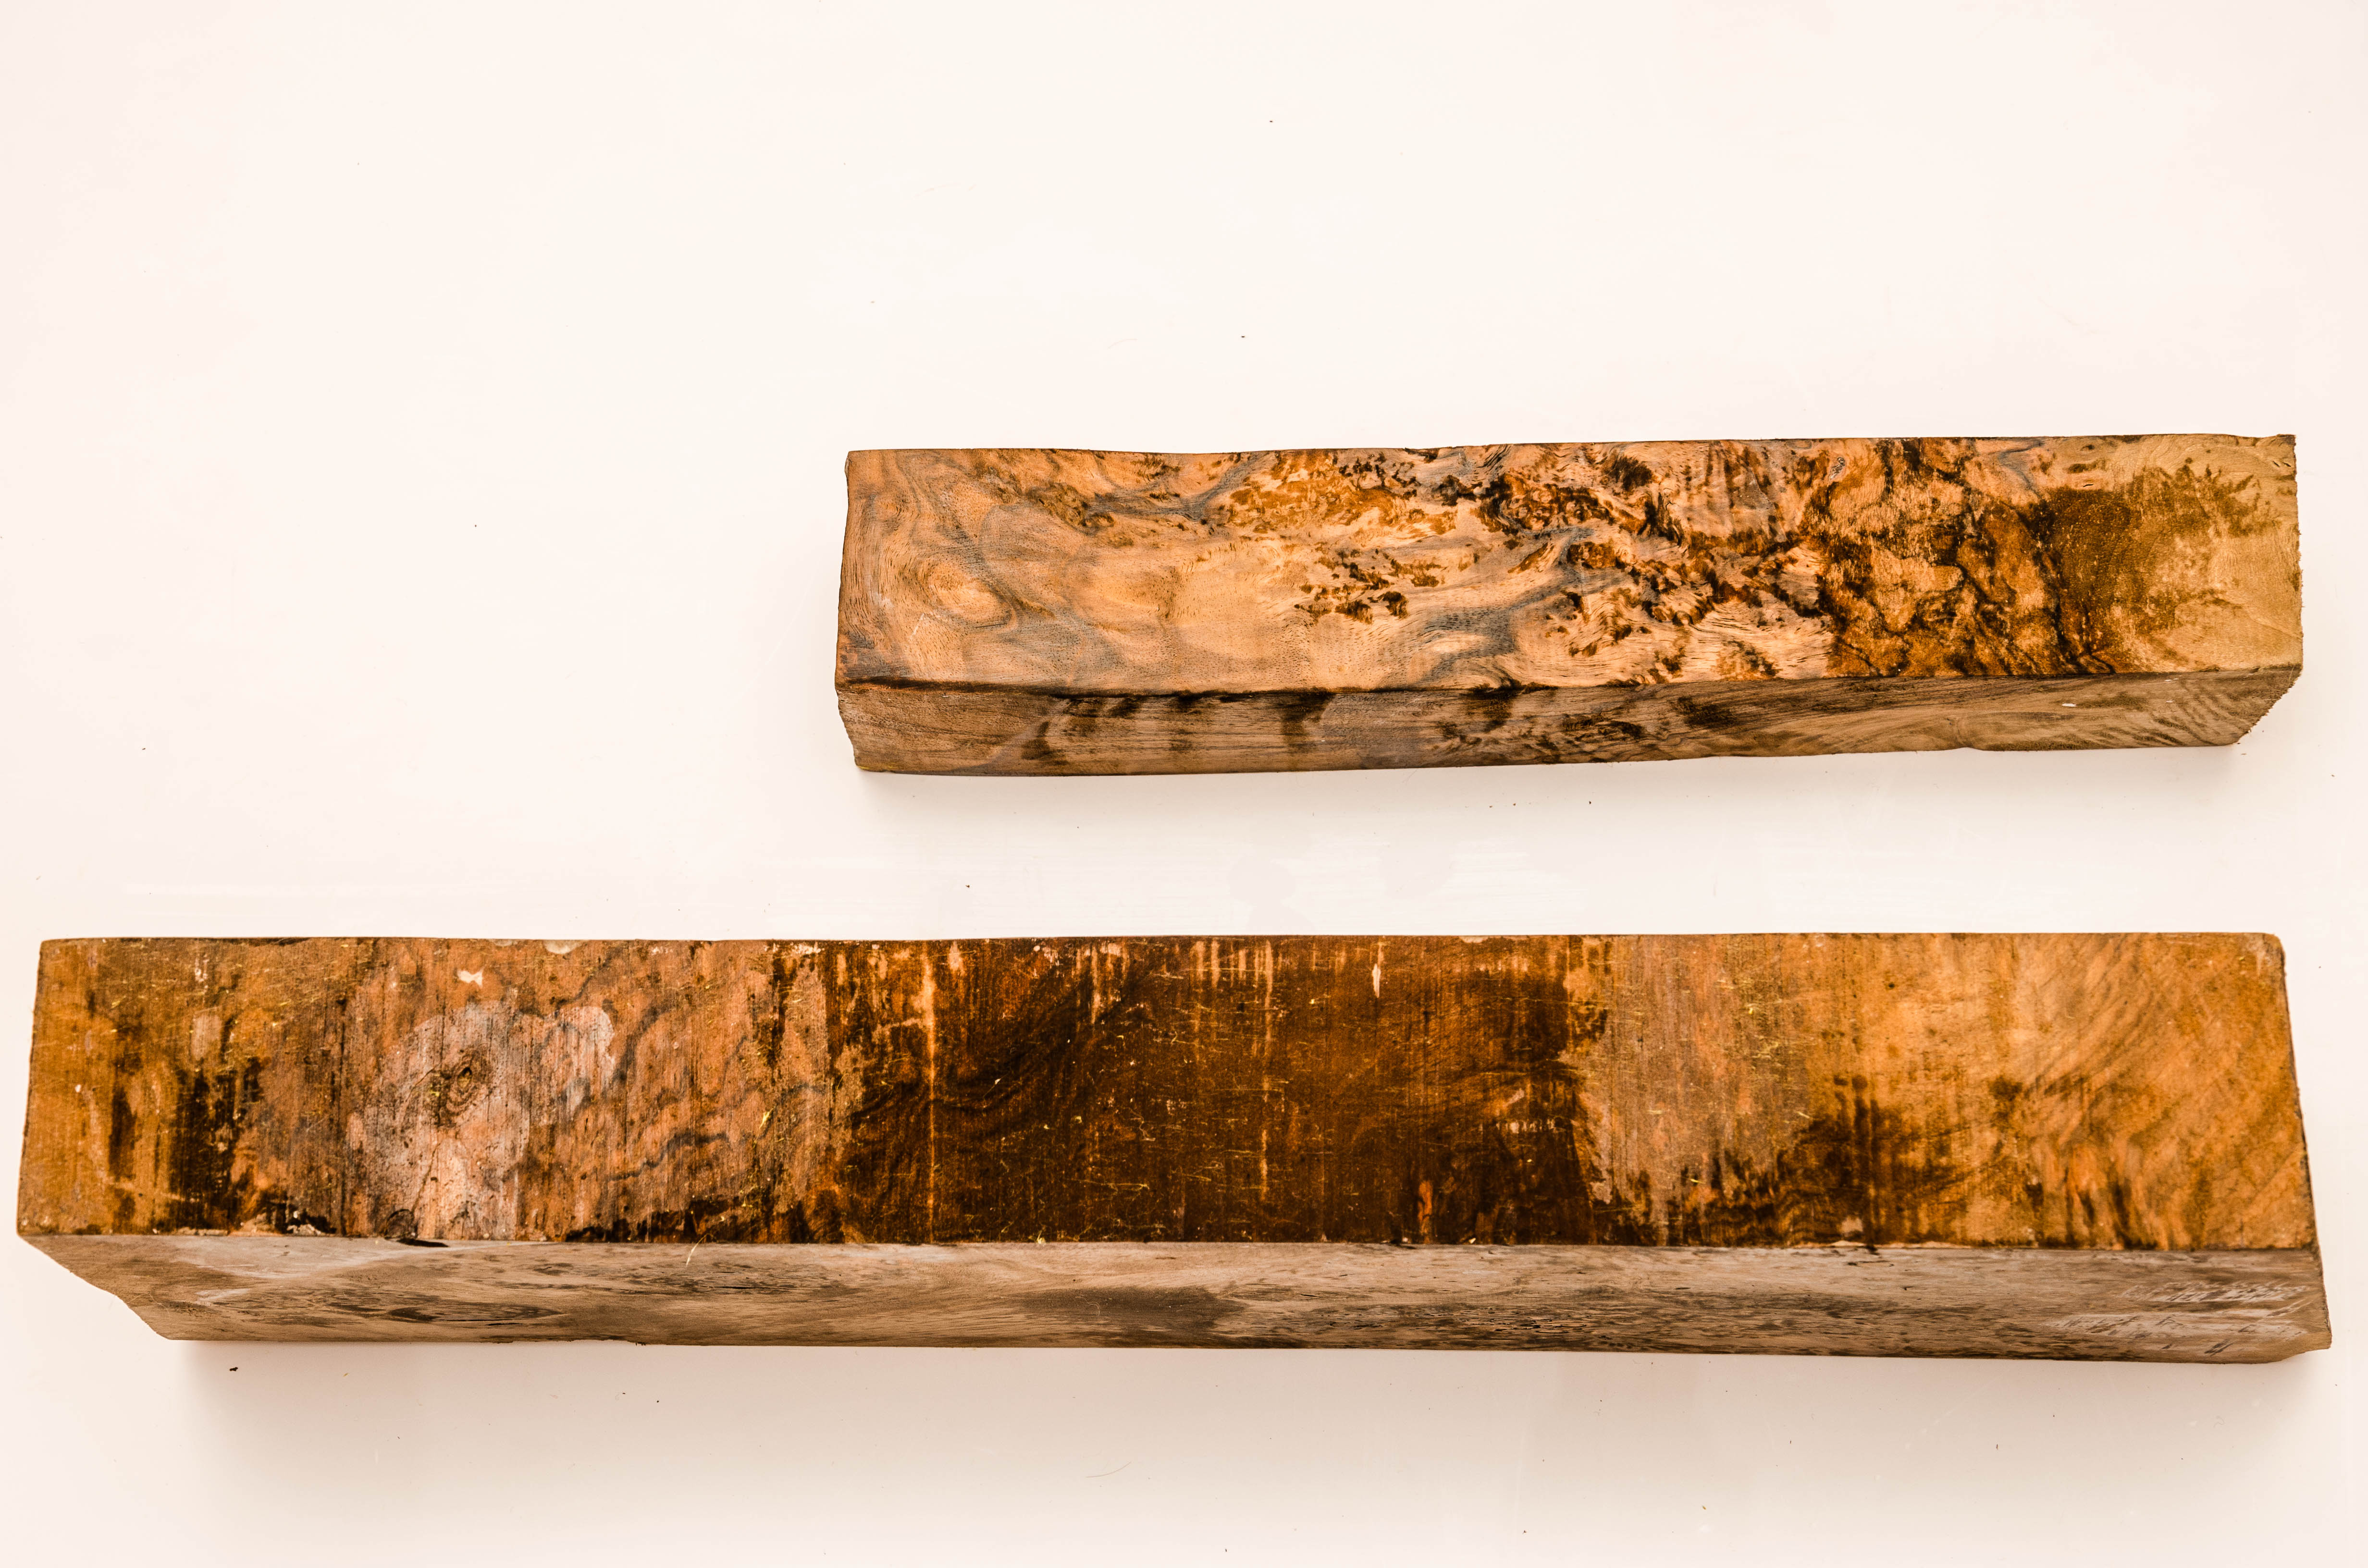 walnut_stock_blanks_for_guns_and_rifles-0316